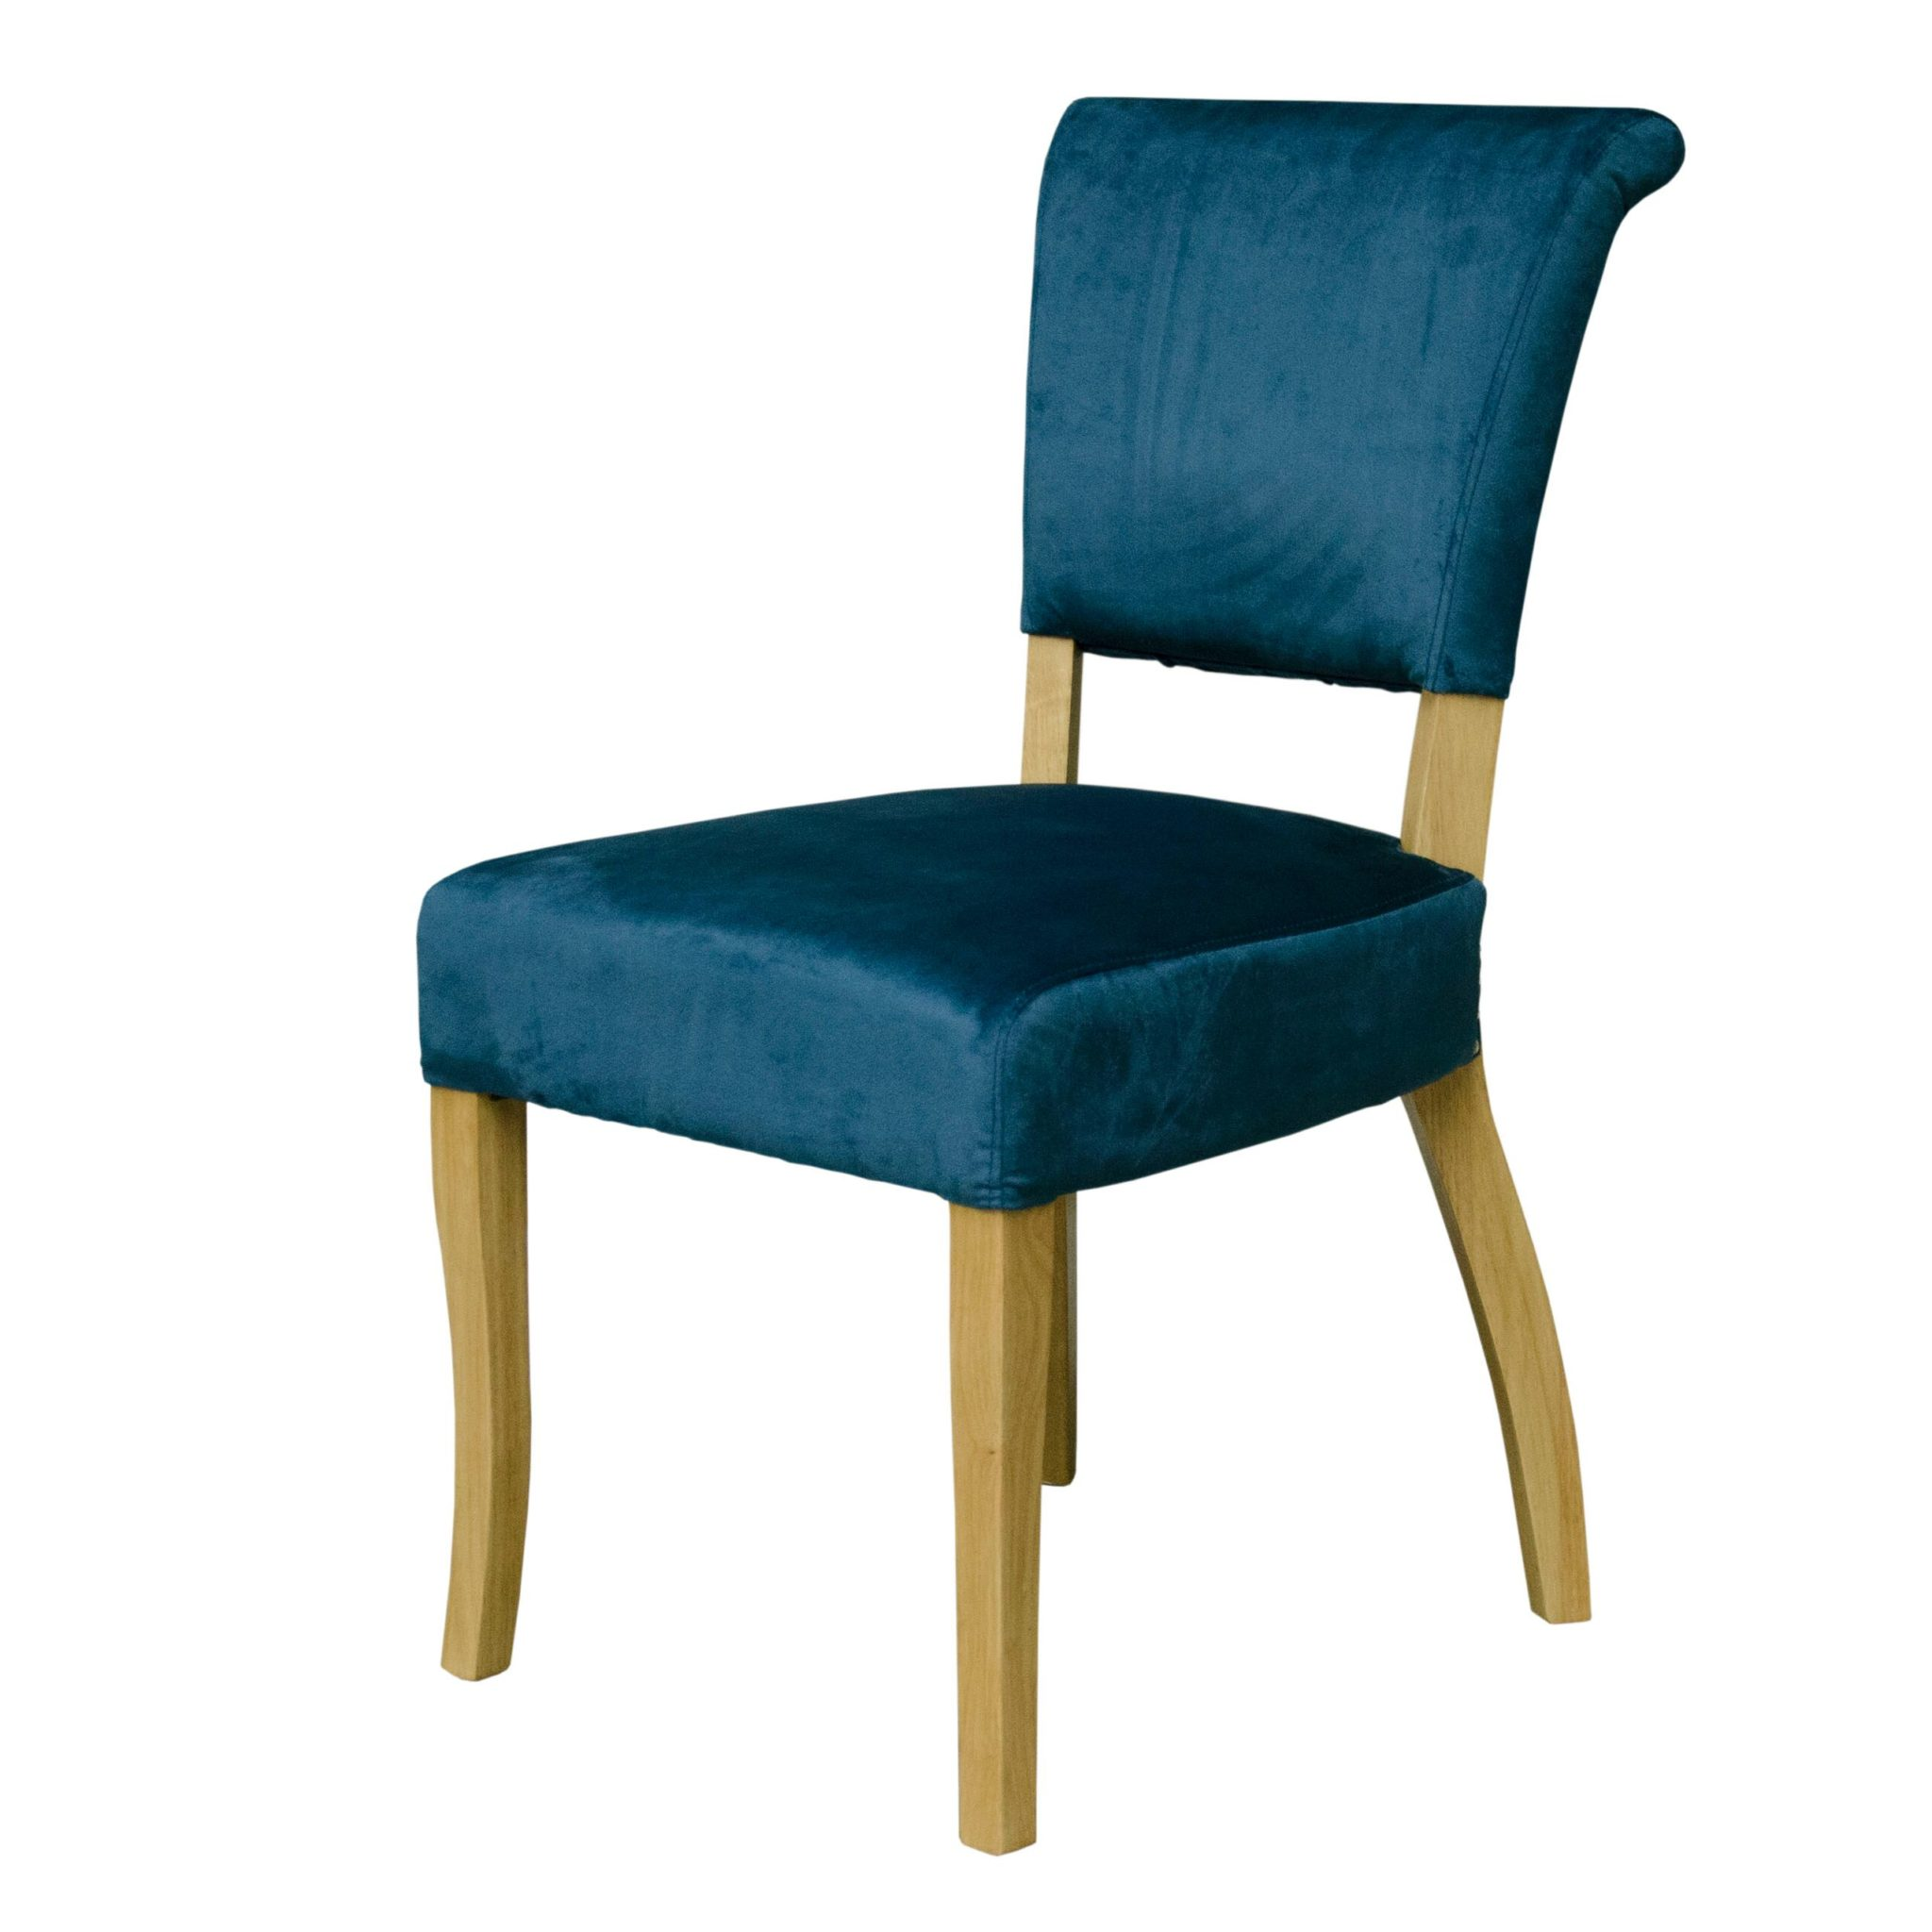 Capri dining chair with oak legs and studded back - petrol blue